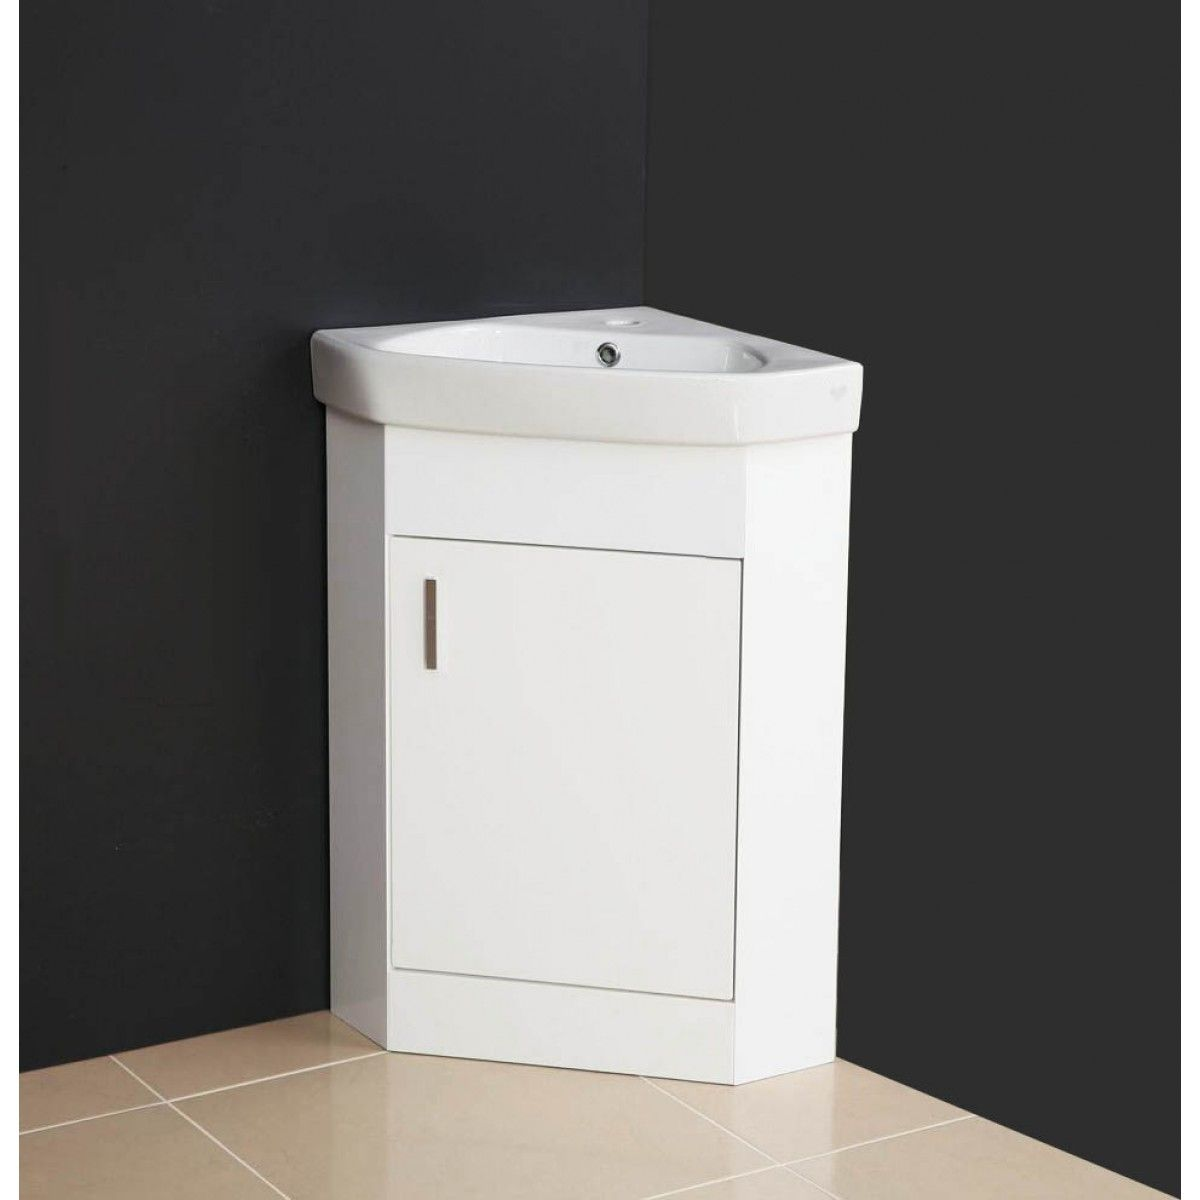 awesome bathroom vanity with countertop collection-Awesome Bathroom Vanity with Countertop Construction